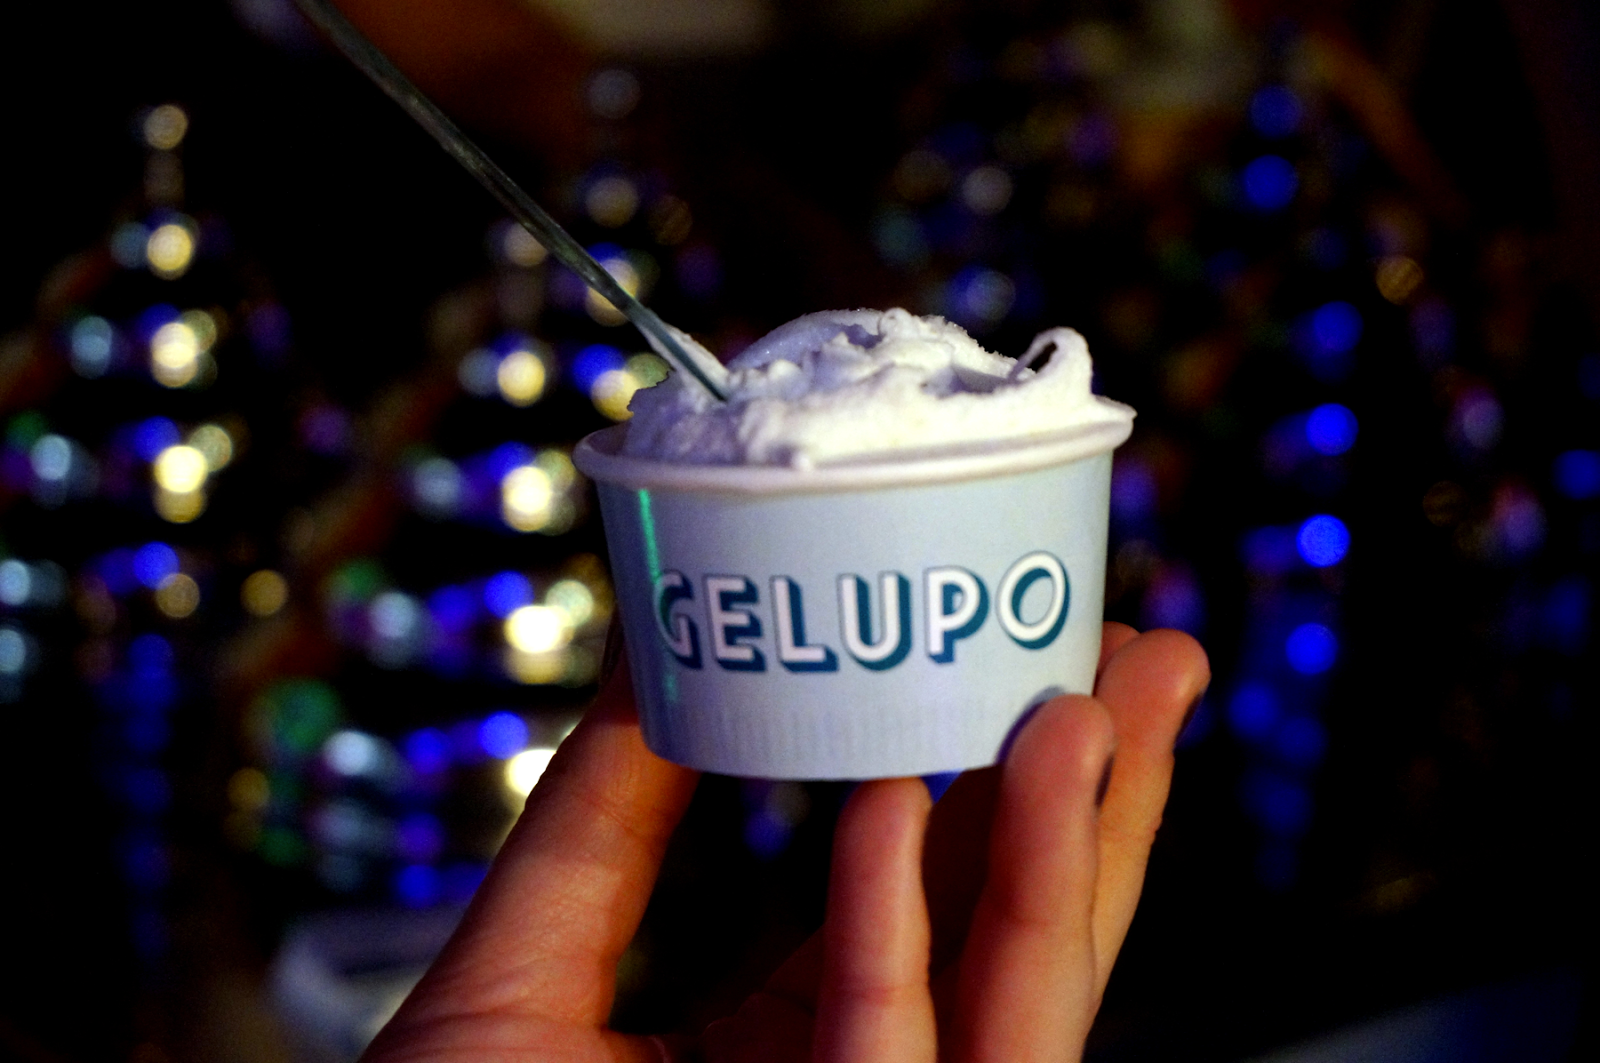 Gelupo ice cream